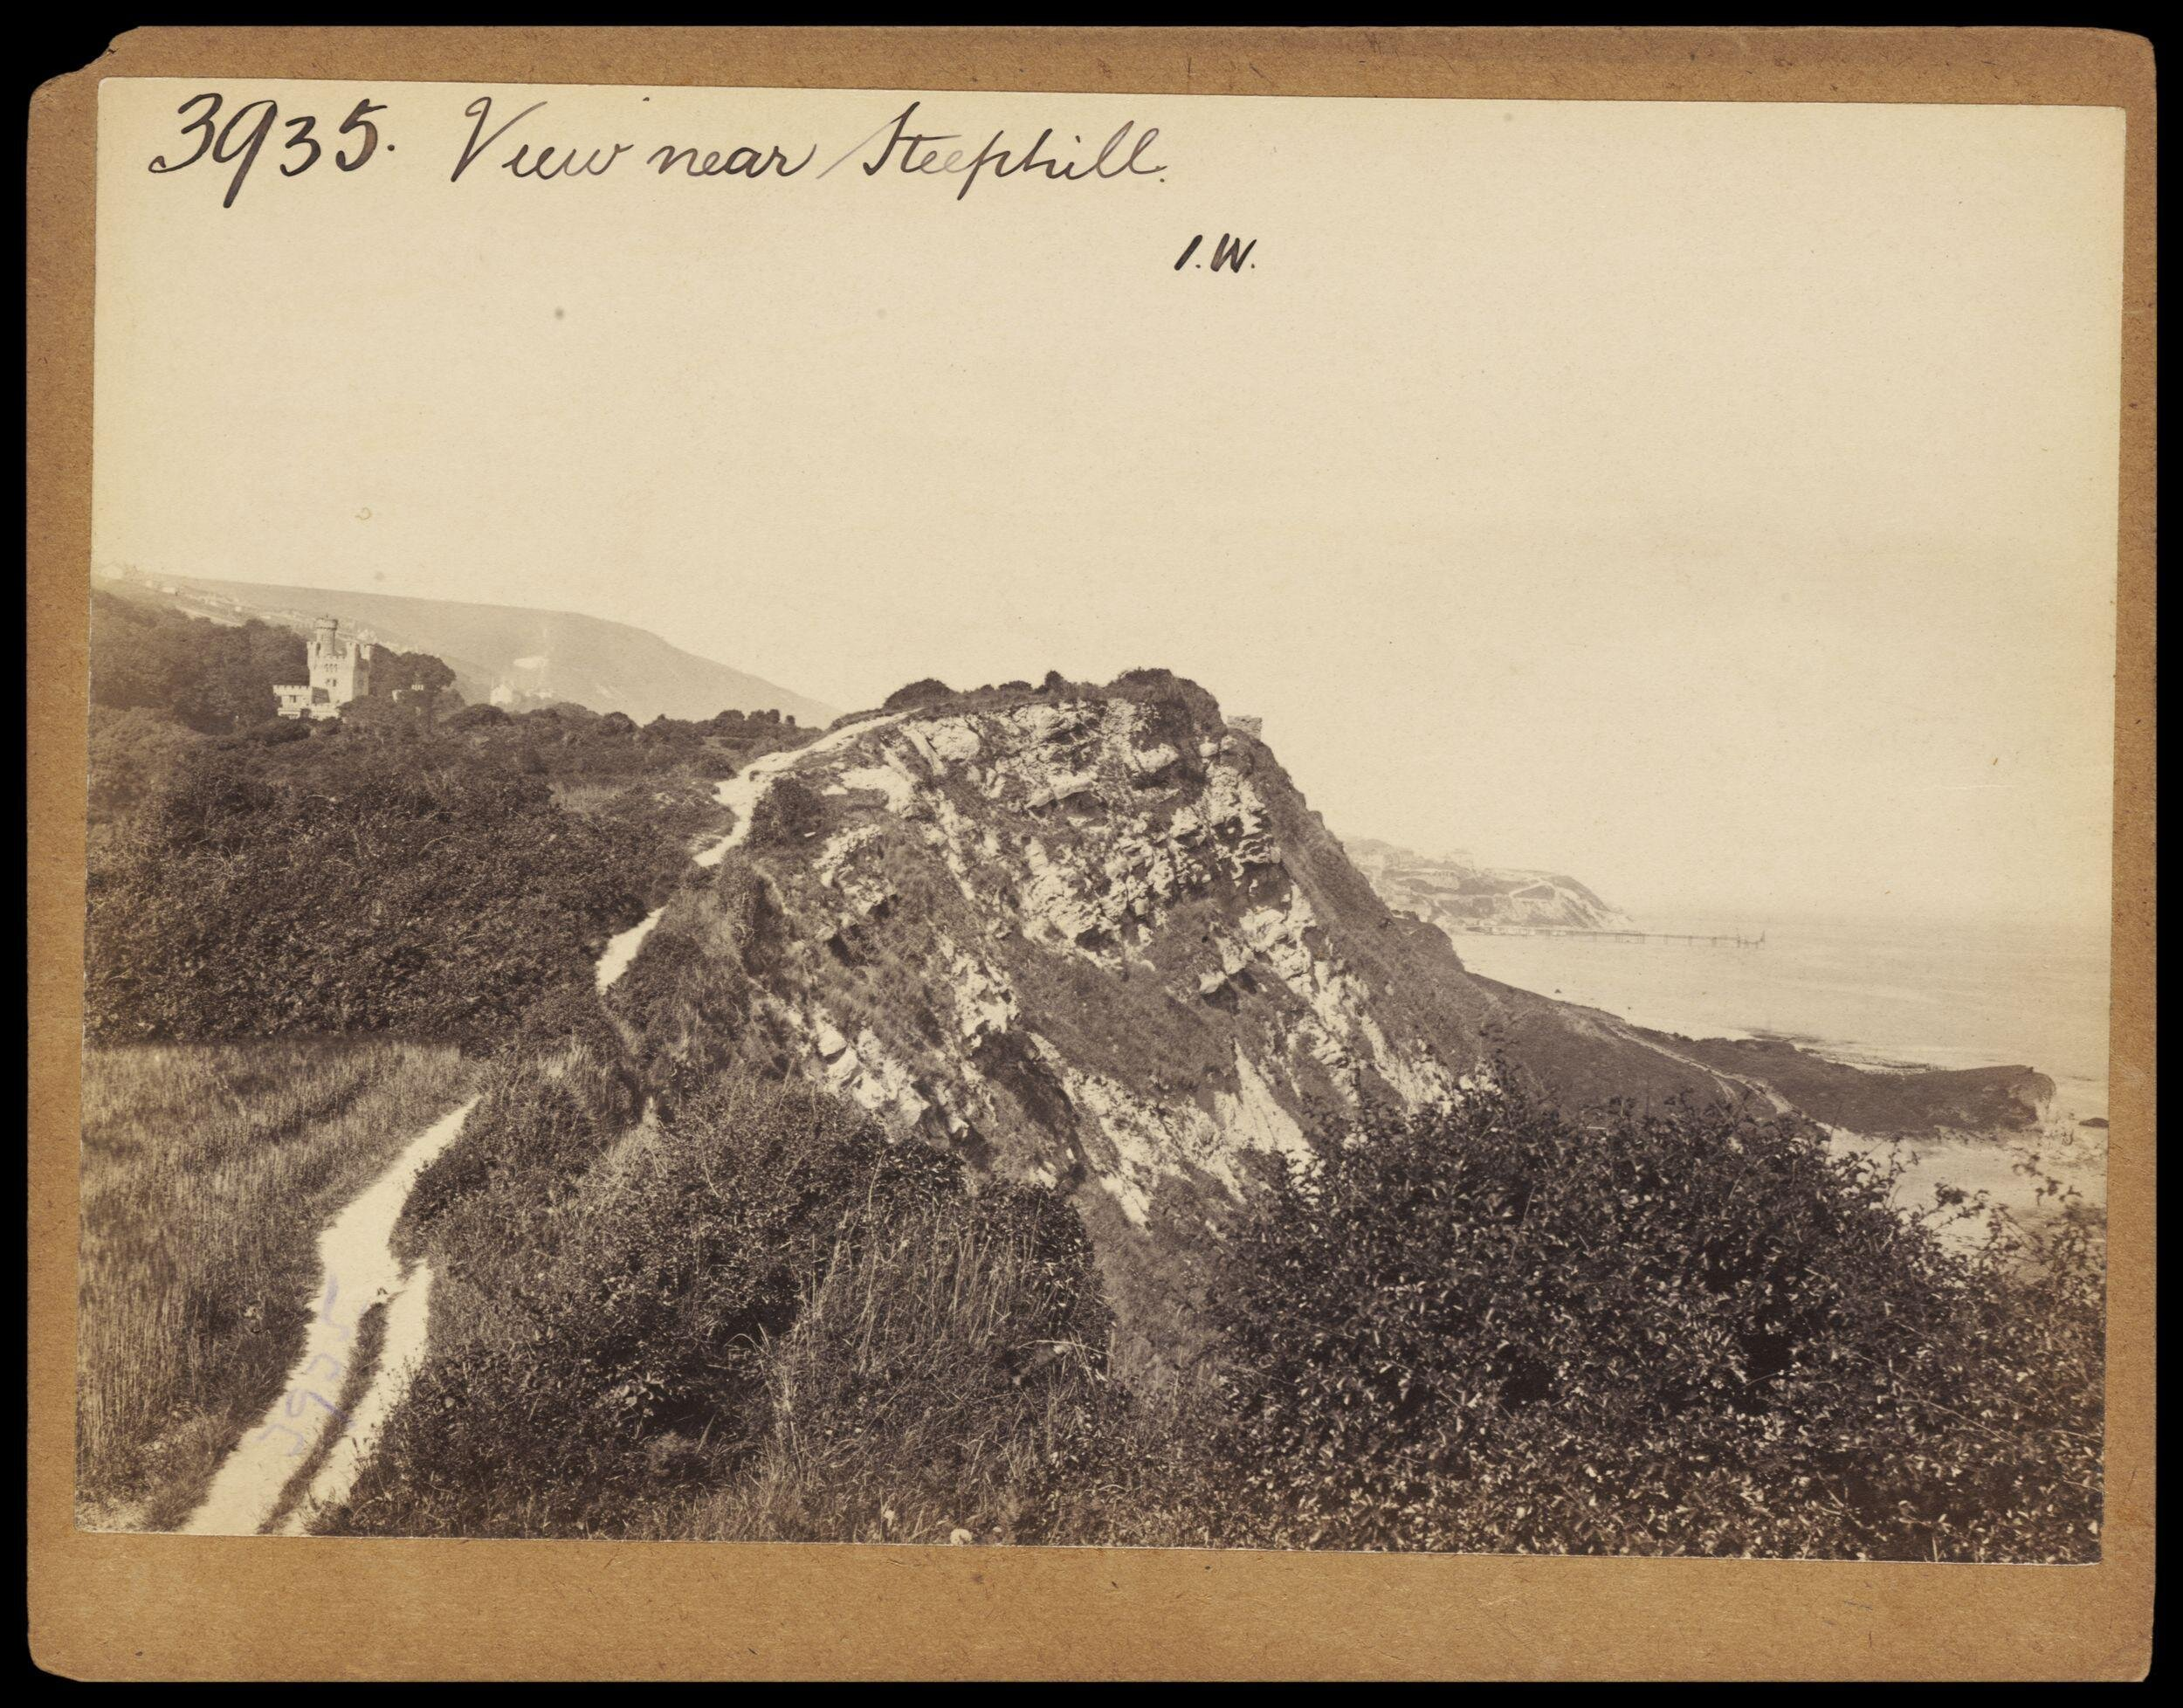 *Photograph by Francis Frith; View near Steephill, c.1860 (Victoria and Albert         Museum E.208:3370-1994). Click to enlarge.